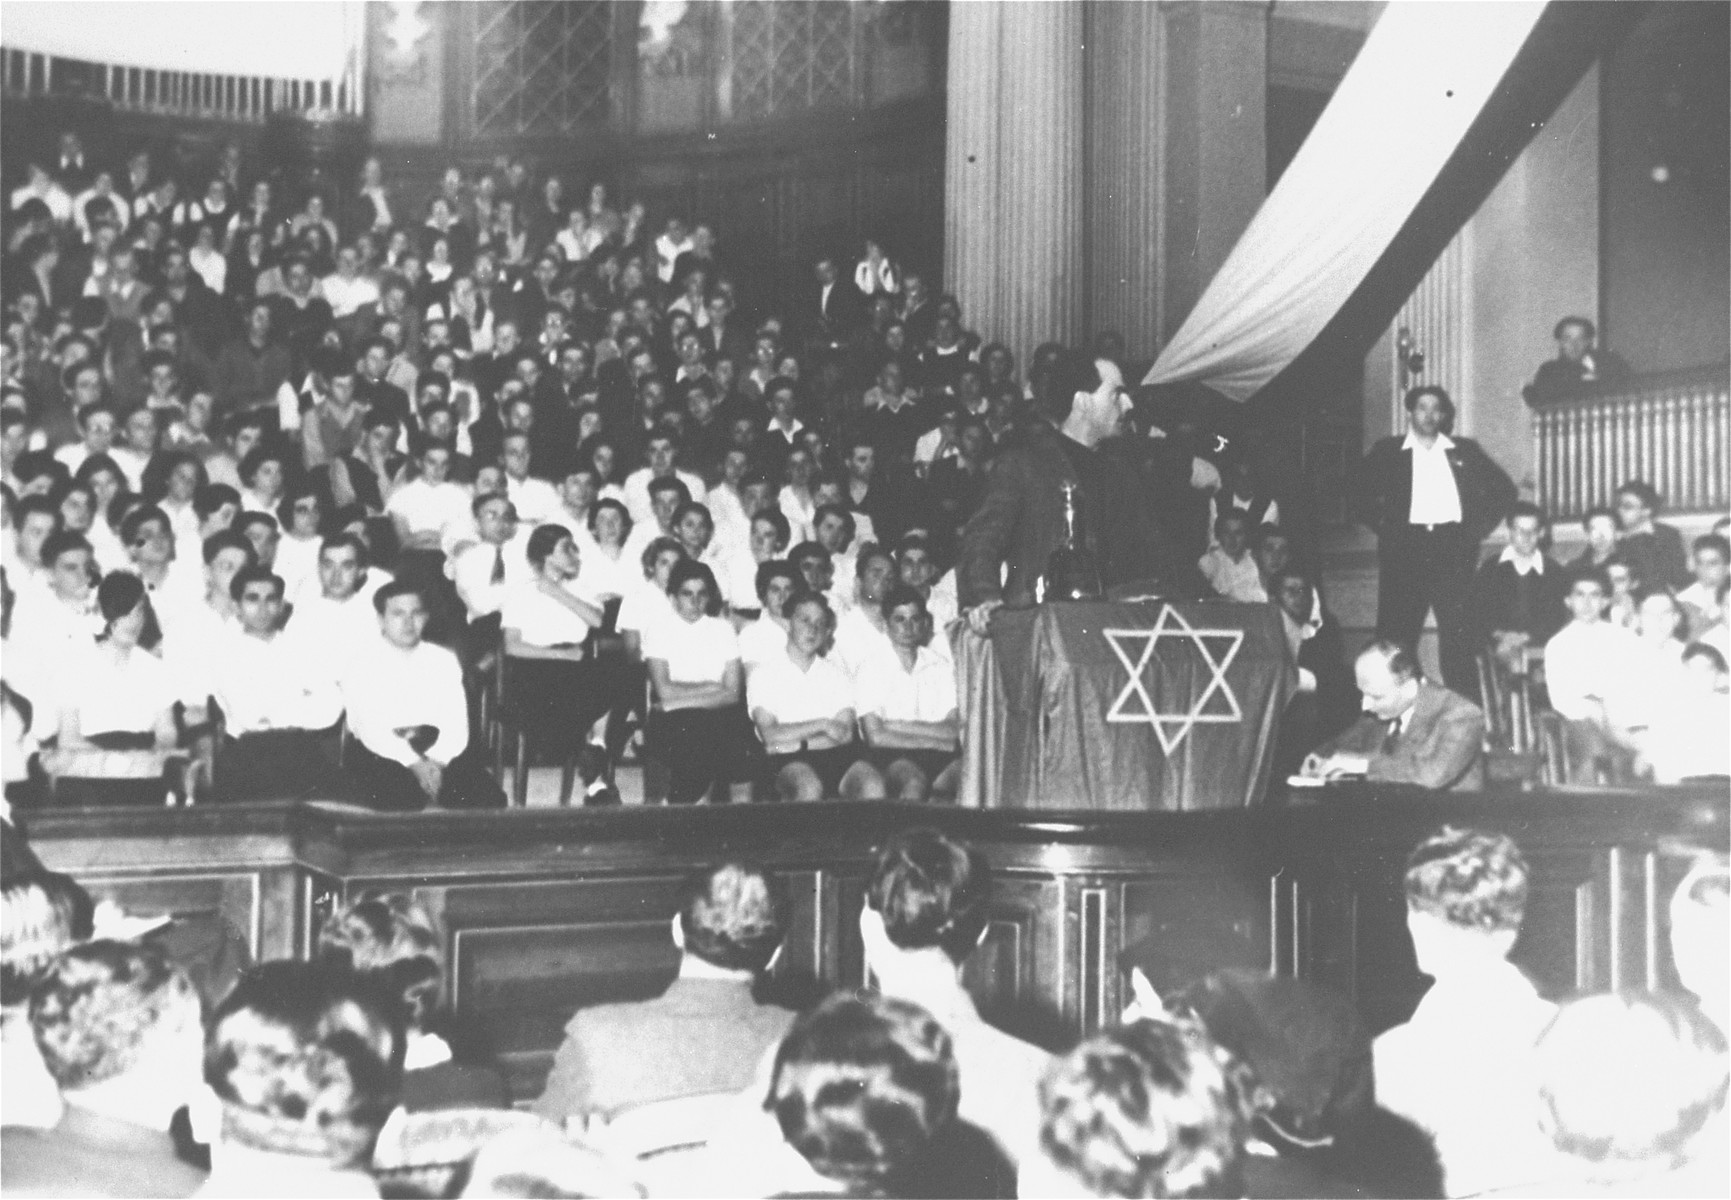 Yitzhak Ben Aharon, a labor leader from Palestine, addresses a meeting of German Jews in a synagogue in Berlin.